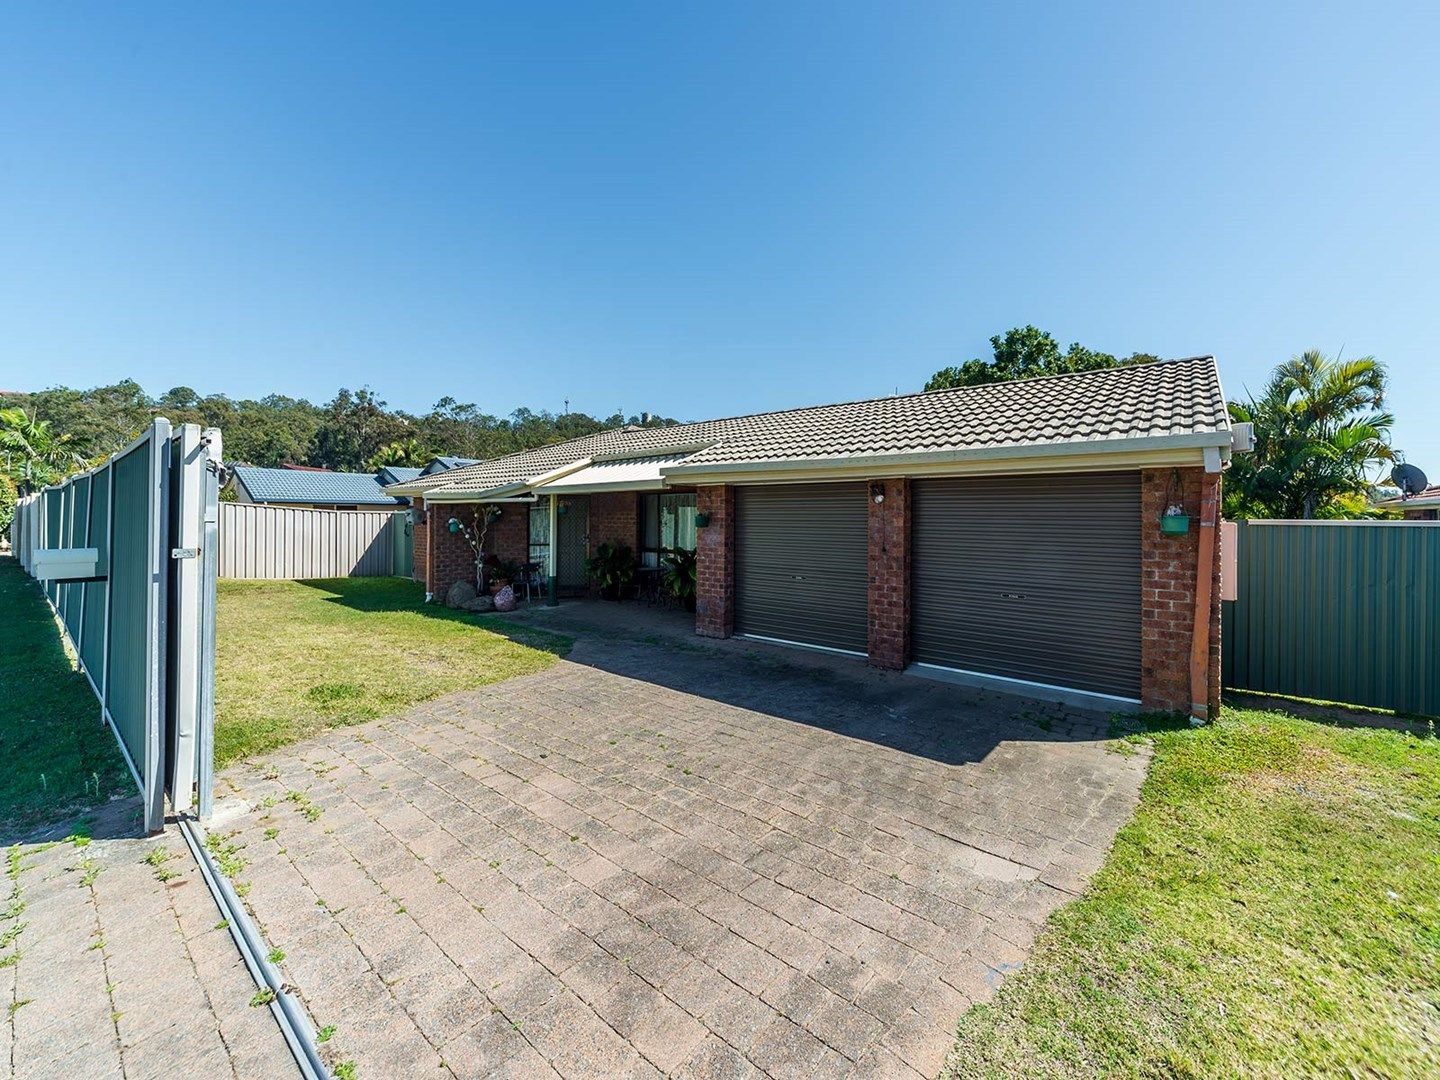 83 Parkes Drive, Helensvale QLD 4212, Image 0